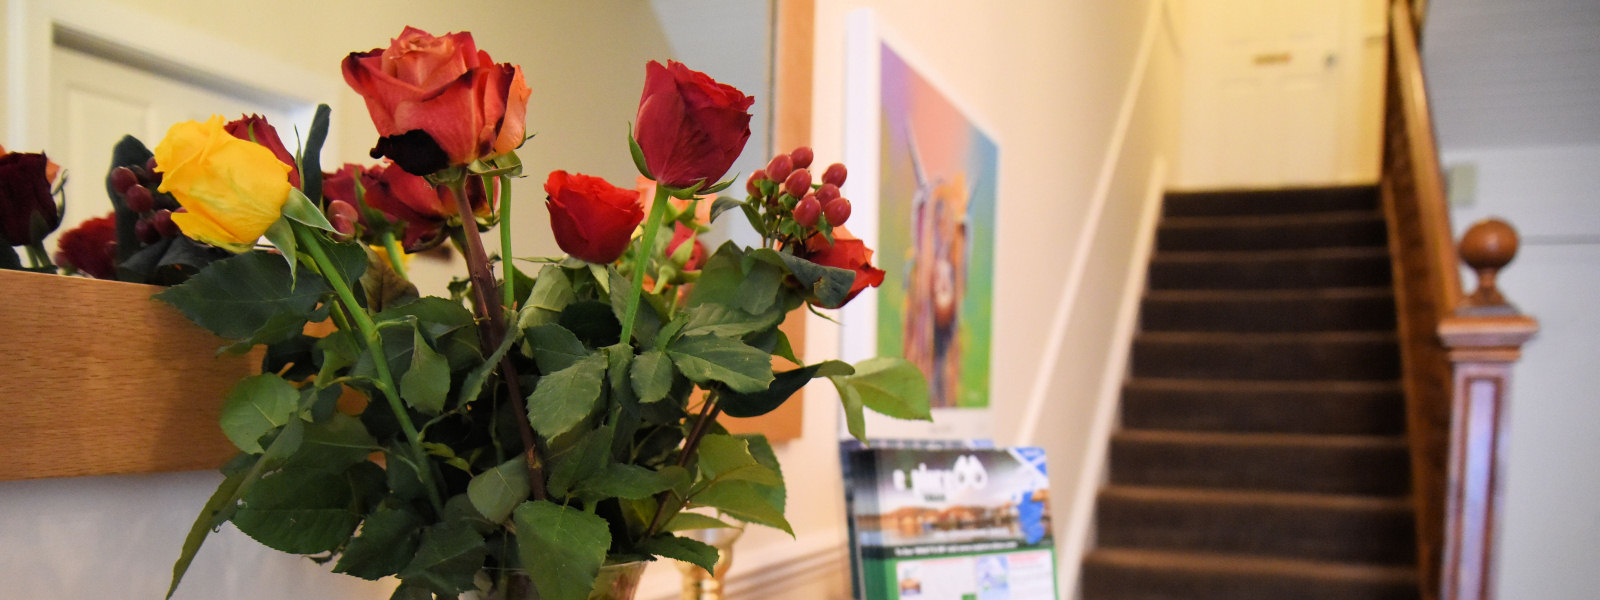 Roses in Entrance Hall